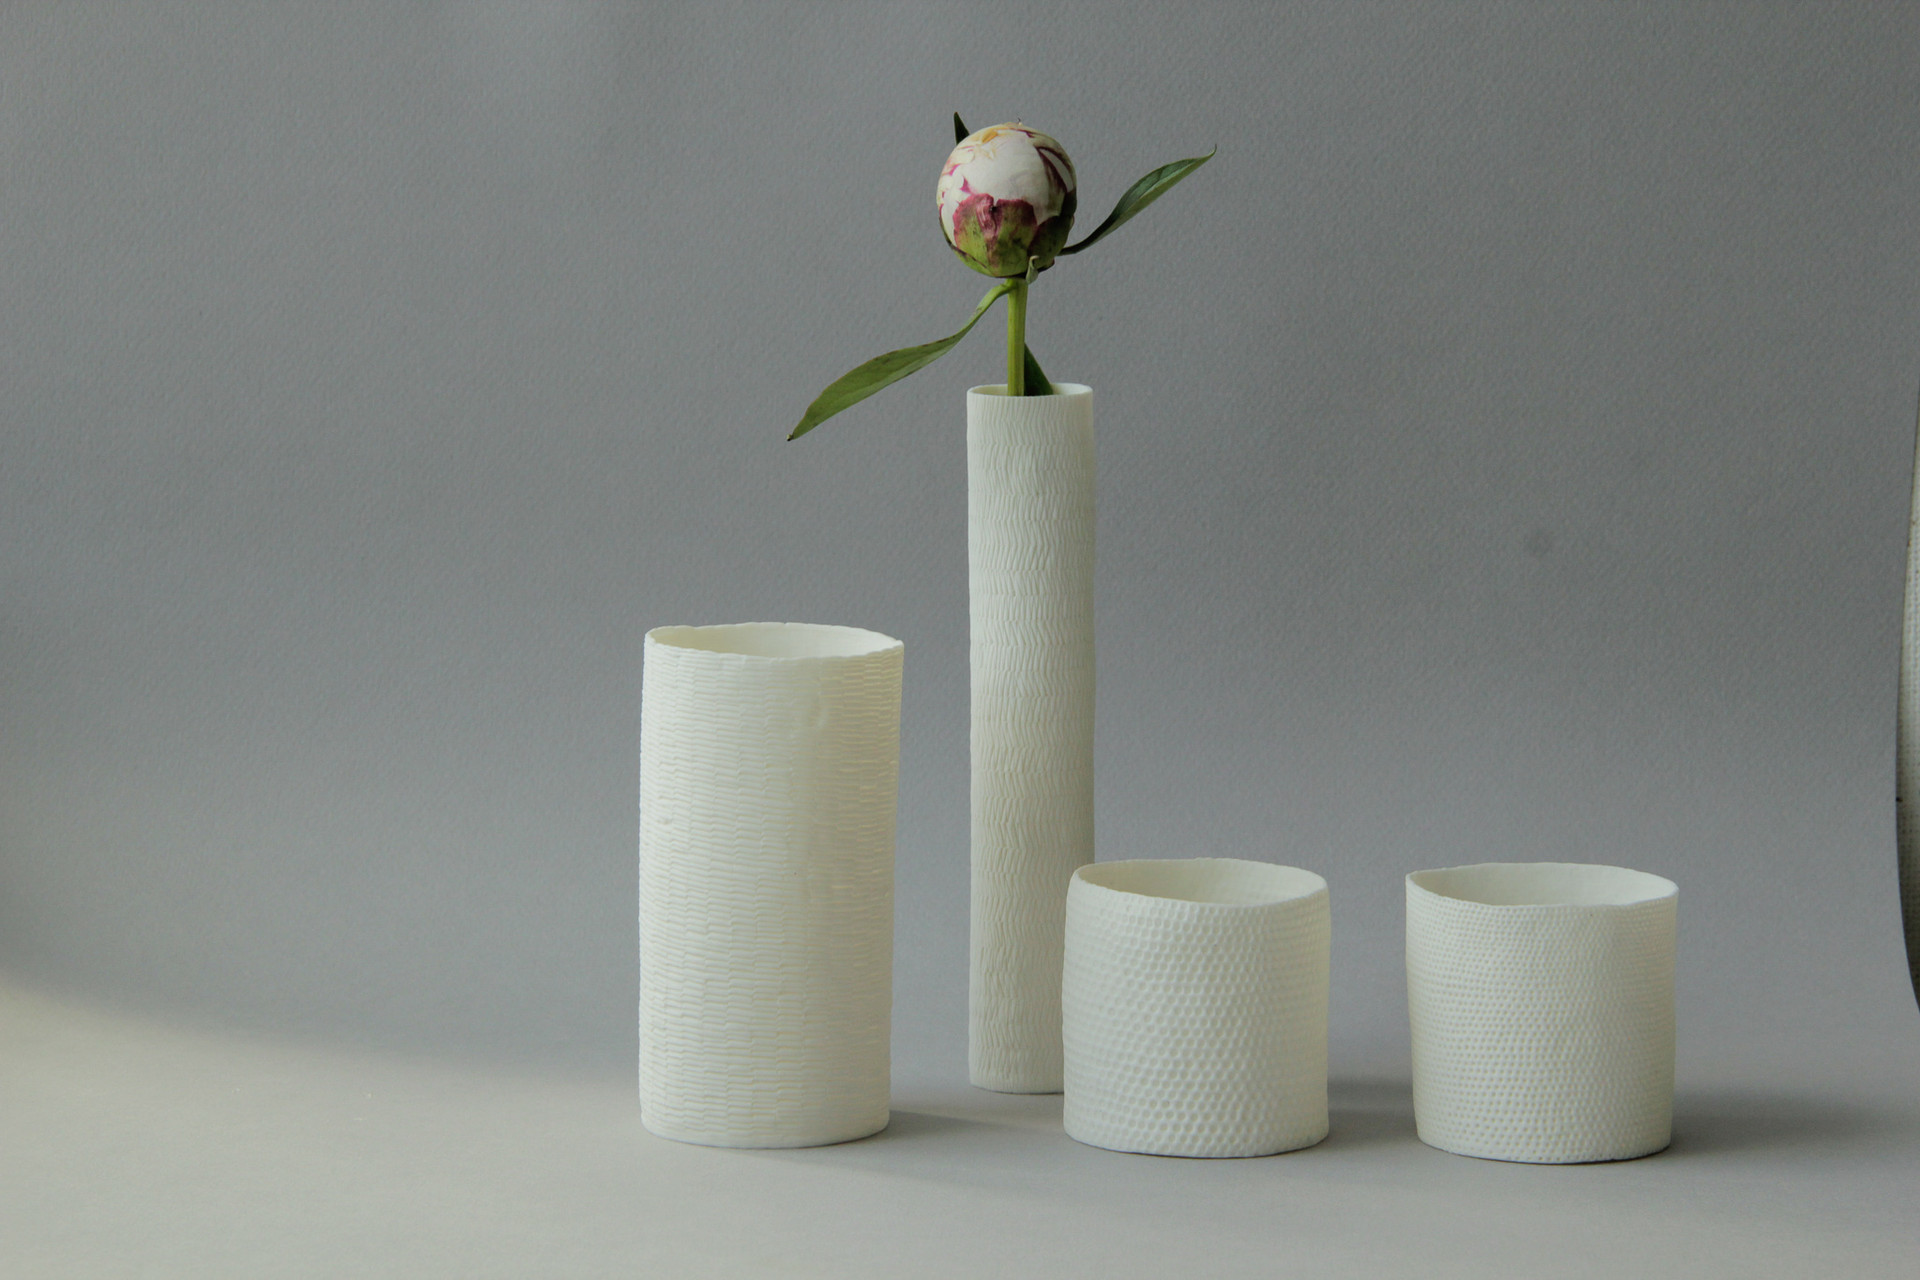 Material Bodies - they make a meeting place, porcelain, 2018